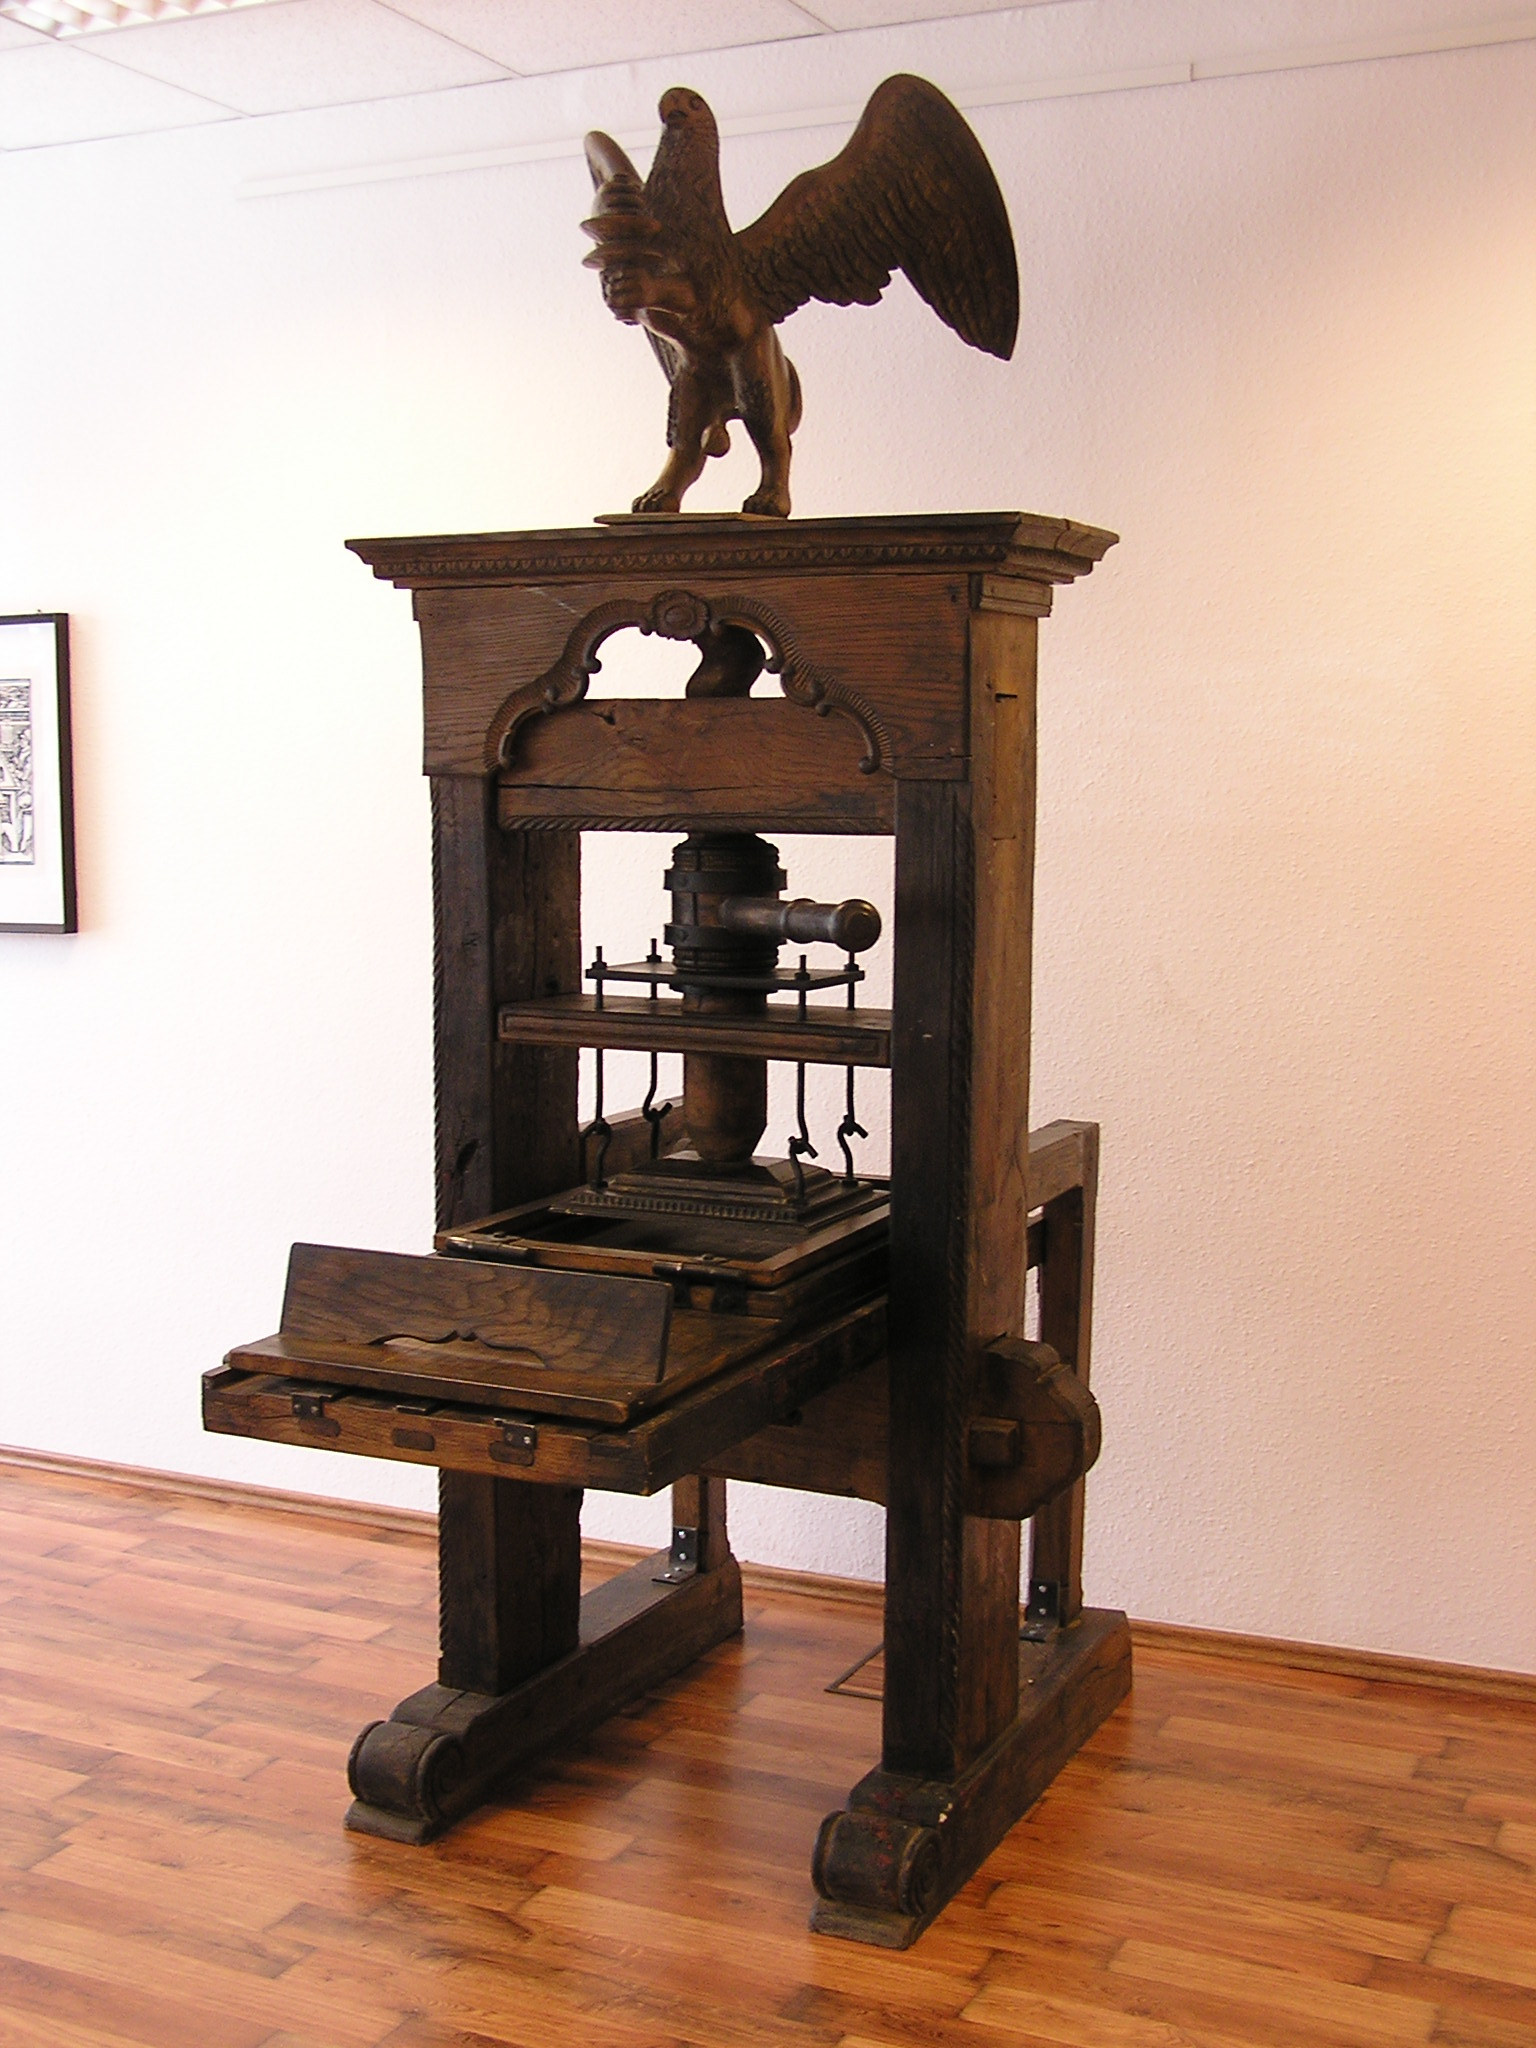 Replica of a screw press; the original dates back to the year 1740. Image: Leipzig Museum of the Printing Arts